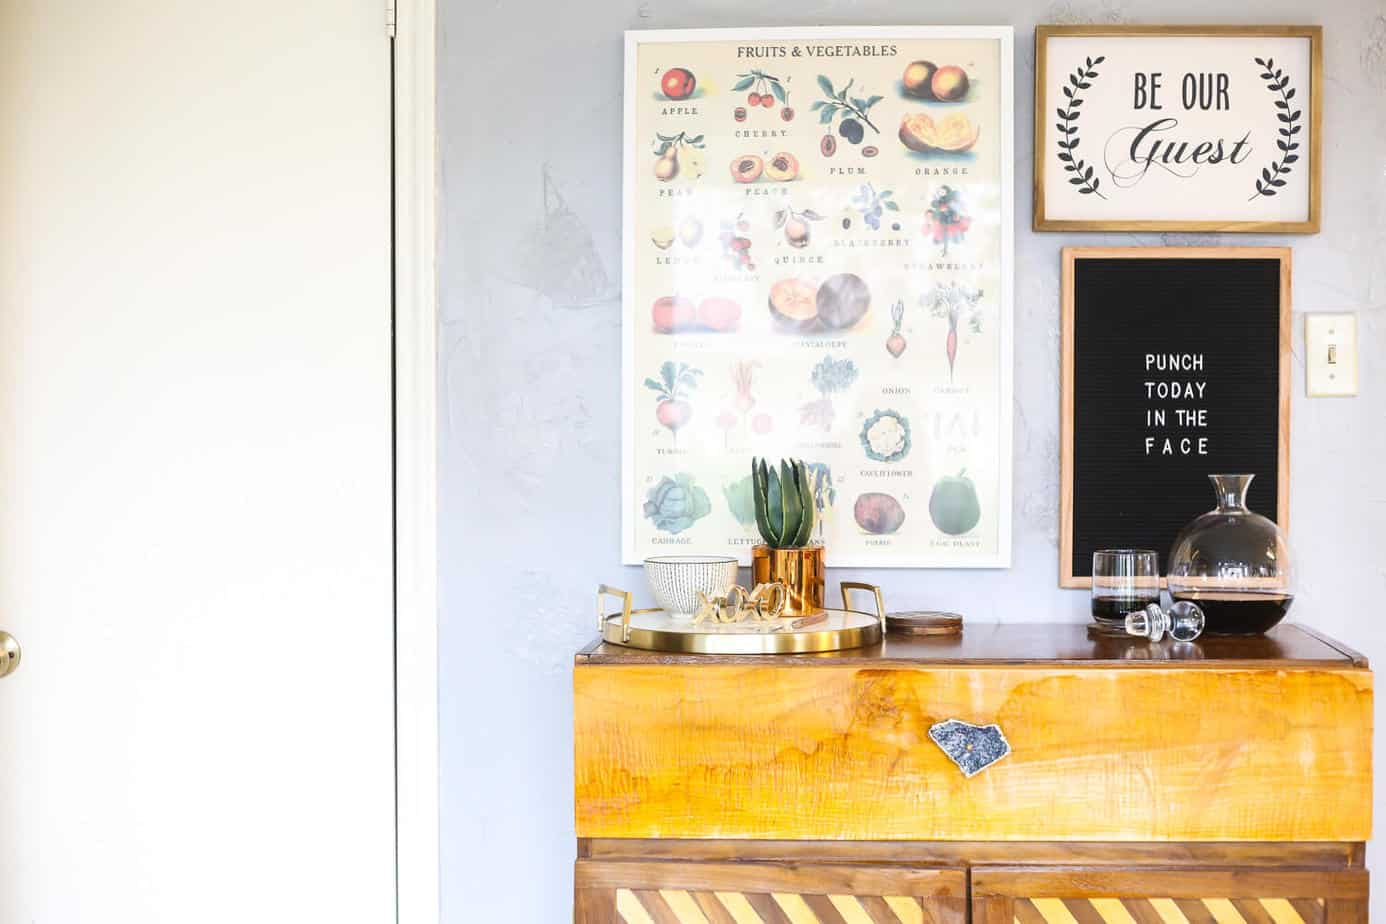 Gorgeous gallery wall inspiration, ideas for what to hang above your bar cart, felt letter board inspiration